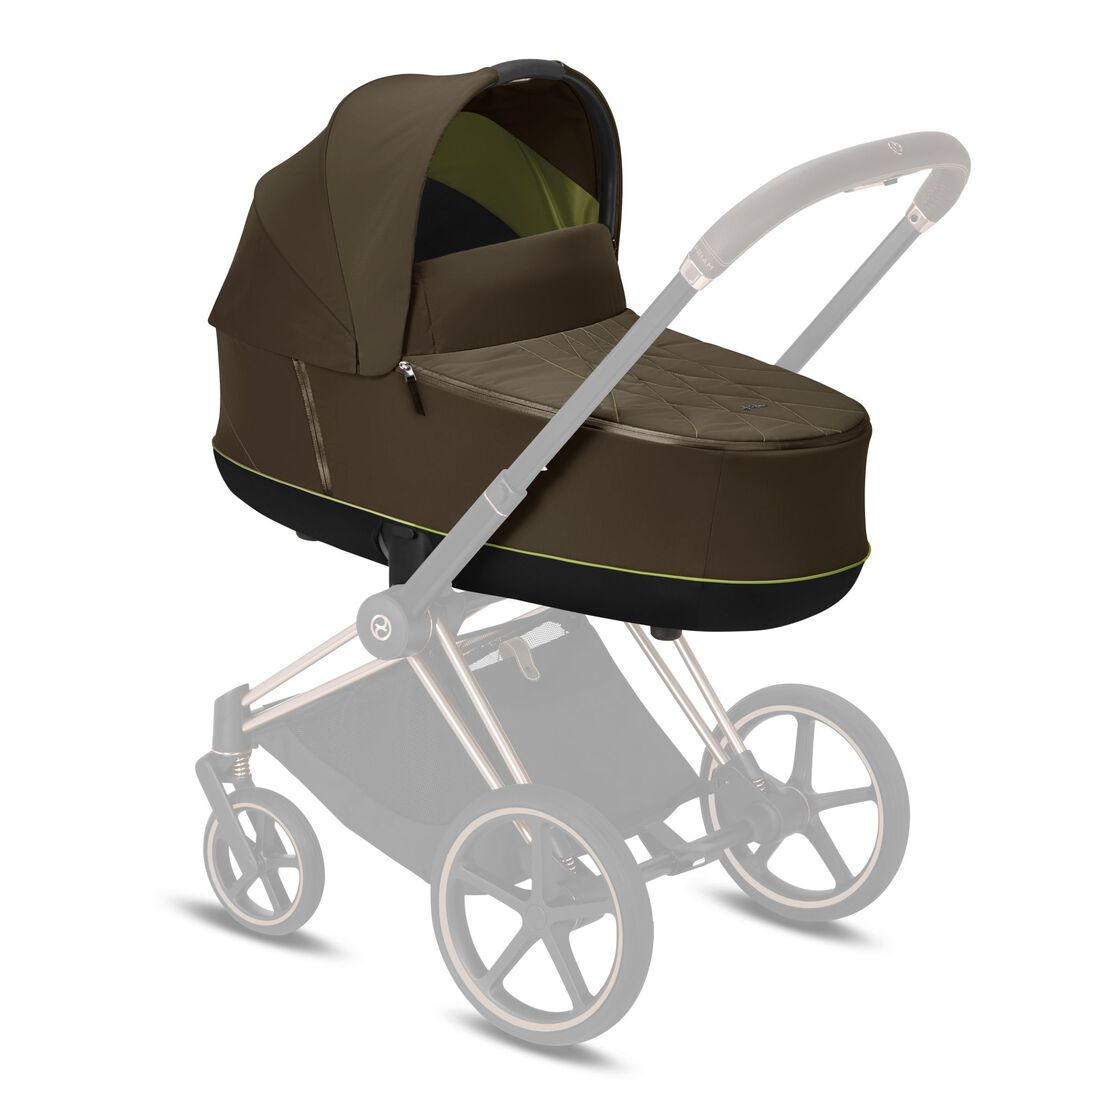 CYBEX Priam Lux Carry Cot - Khaki Green in Khaki Green large image number 5